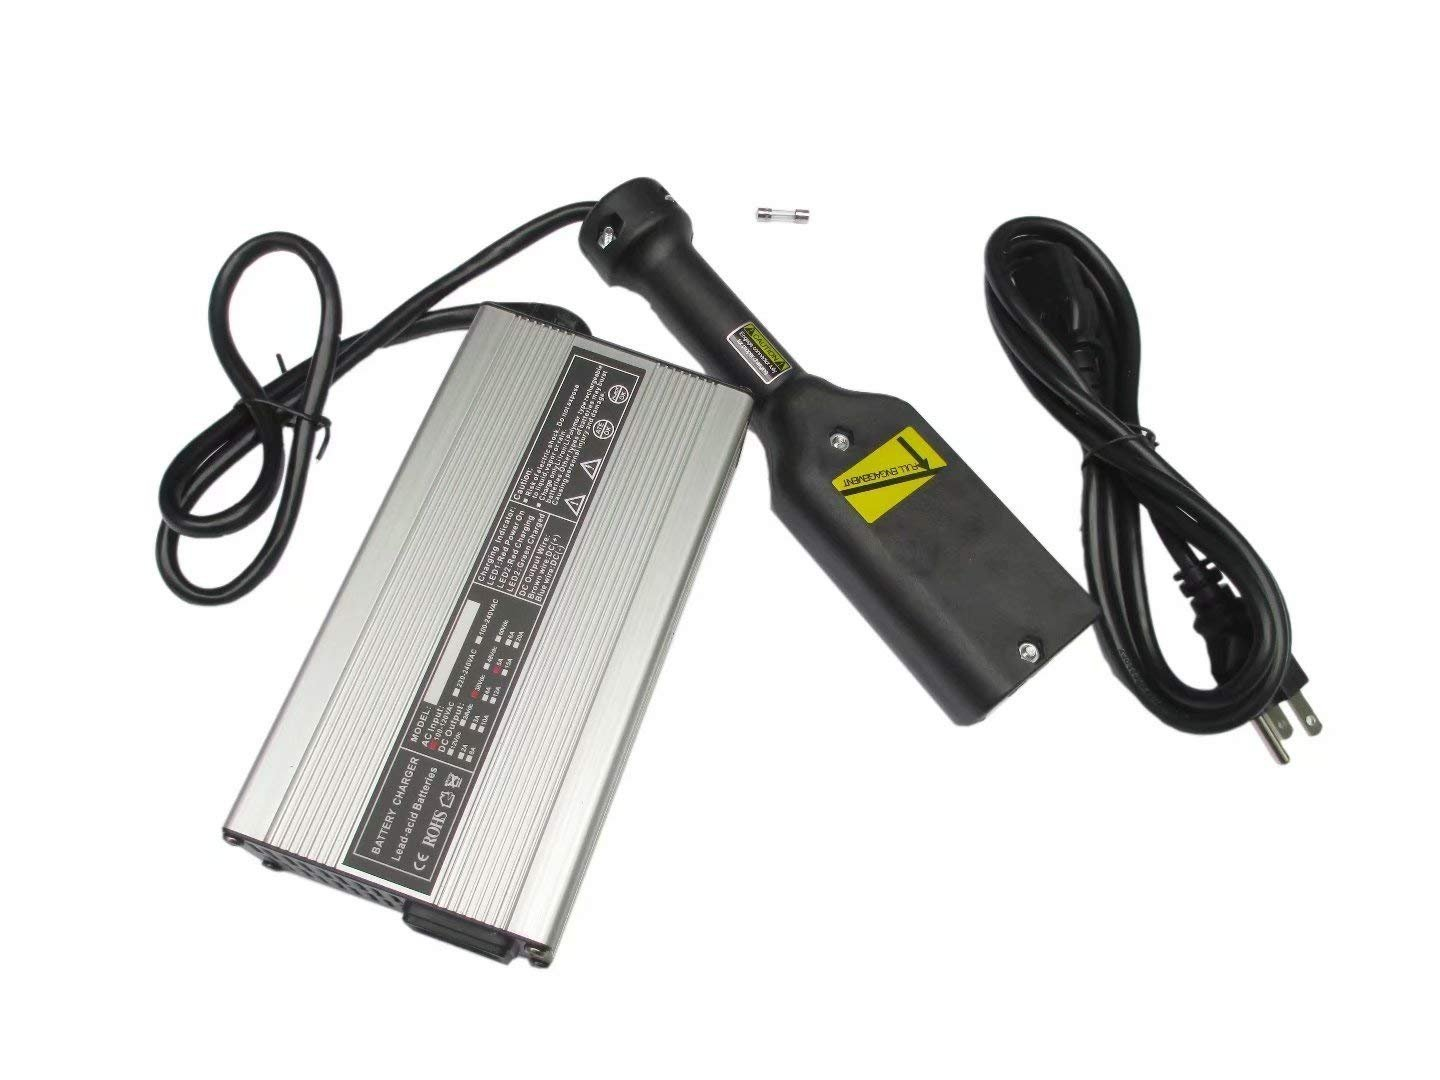 NEW 36V EZ-GO Powerwise 36 Volt TXT Medalist Golf Cart Battery Charger''D'' Style by JEM&JULES (Image #5)